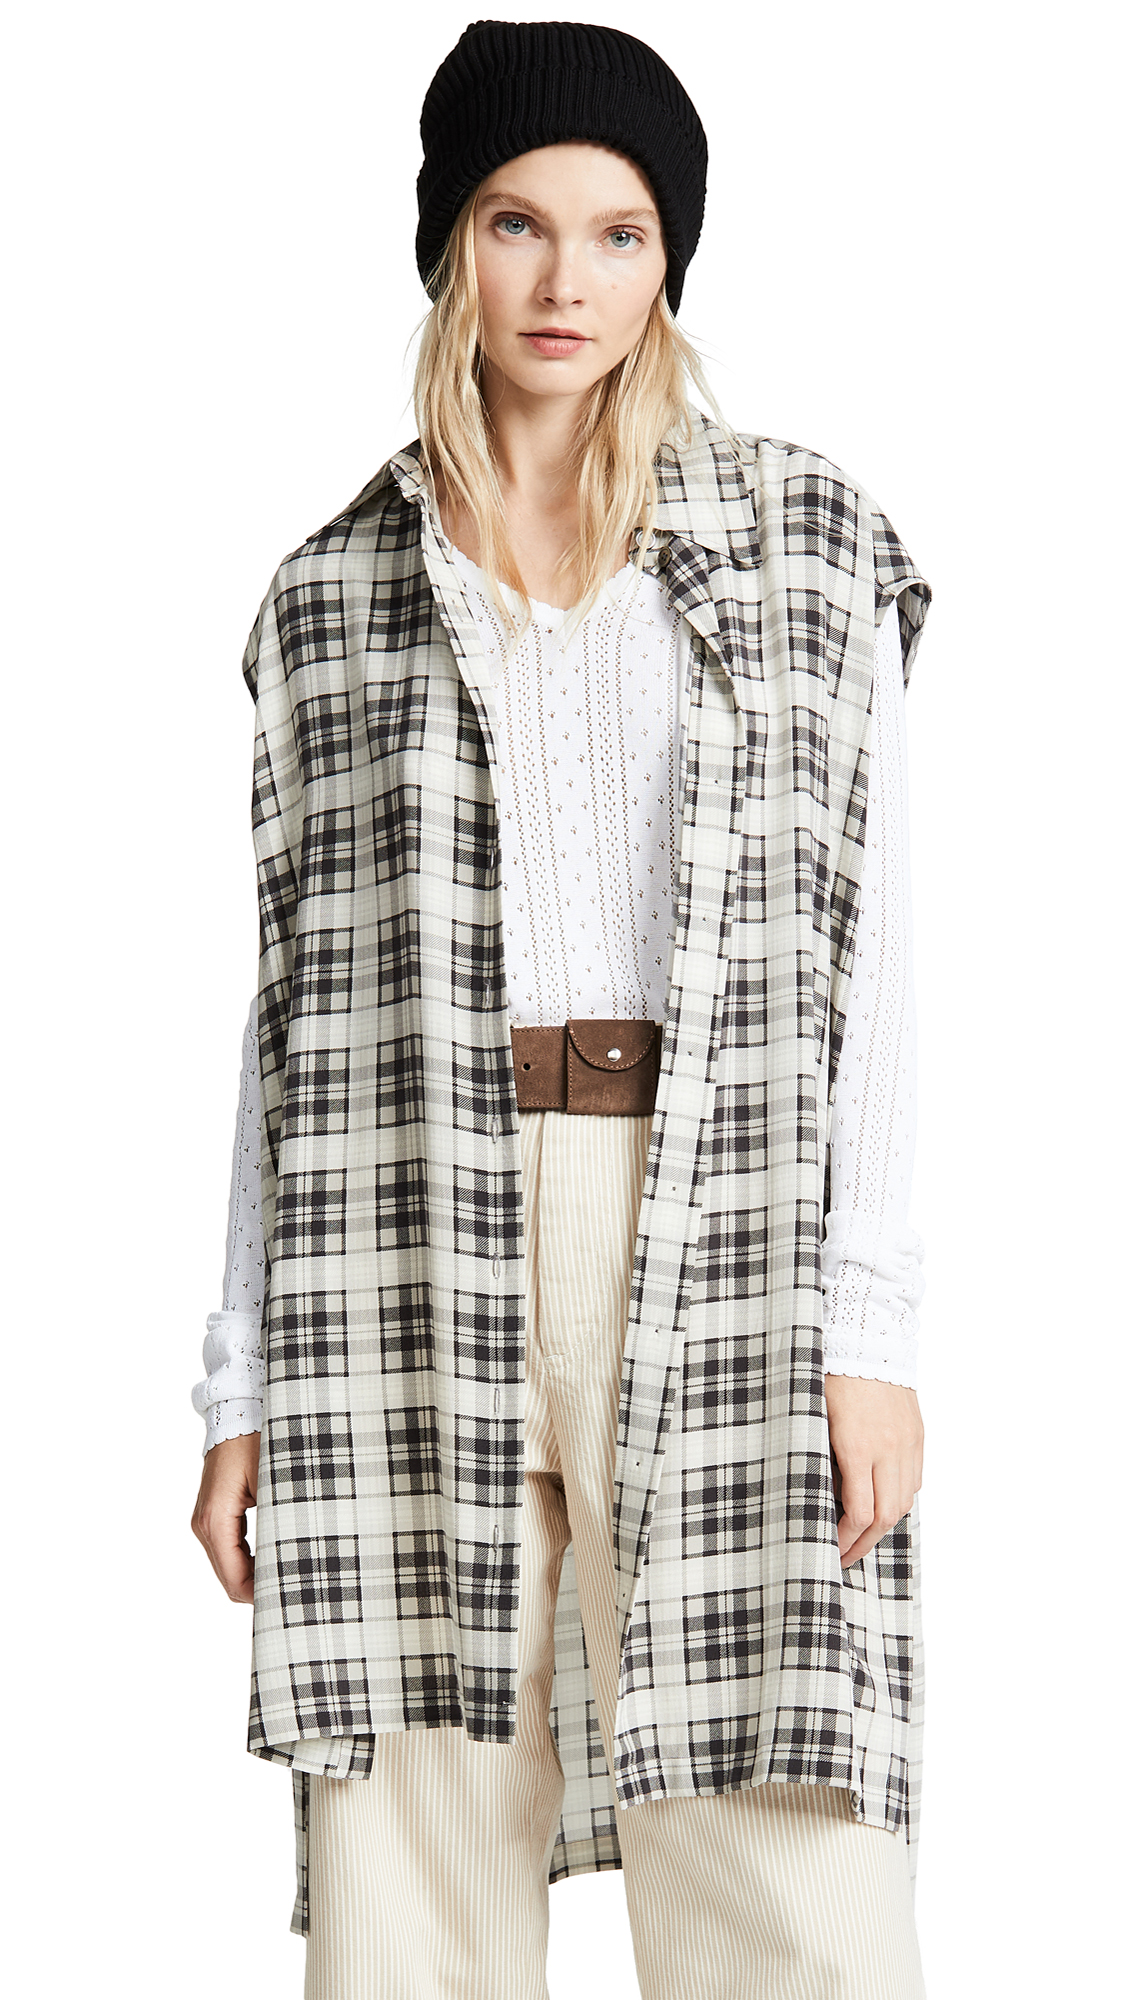 Marc Jacobs Redux Grunge Sleeveless Button Down Top - Ivory Multi